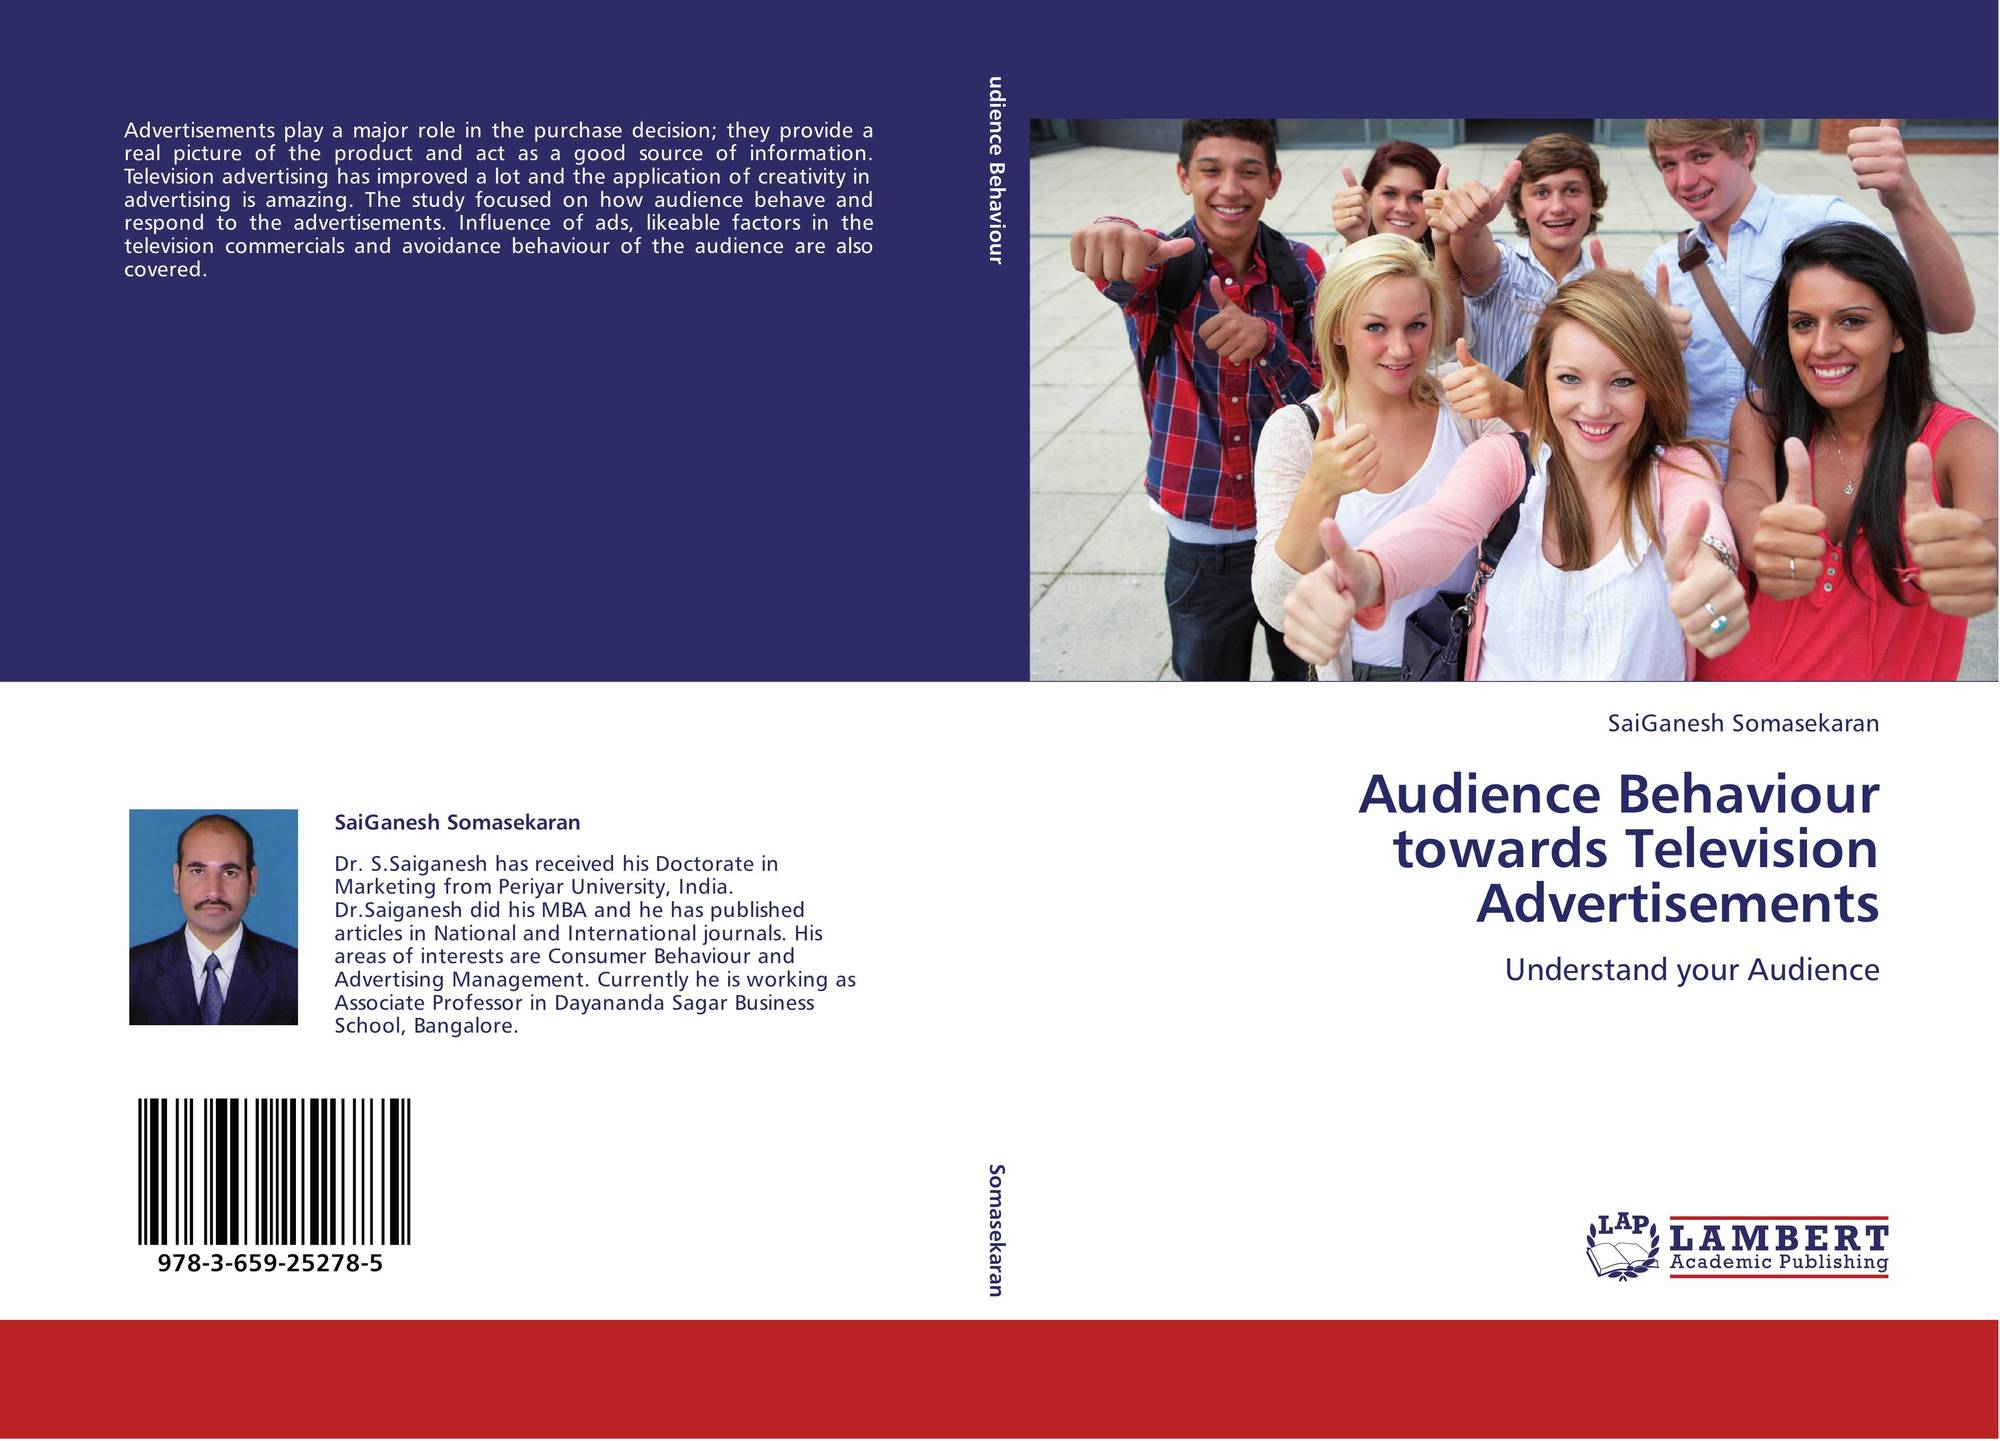 consumer behavior tv advertising Marketers are looking to science for insights about how and why people share drawing from research about psychology, consumer behavior principles.